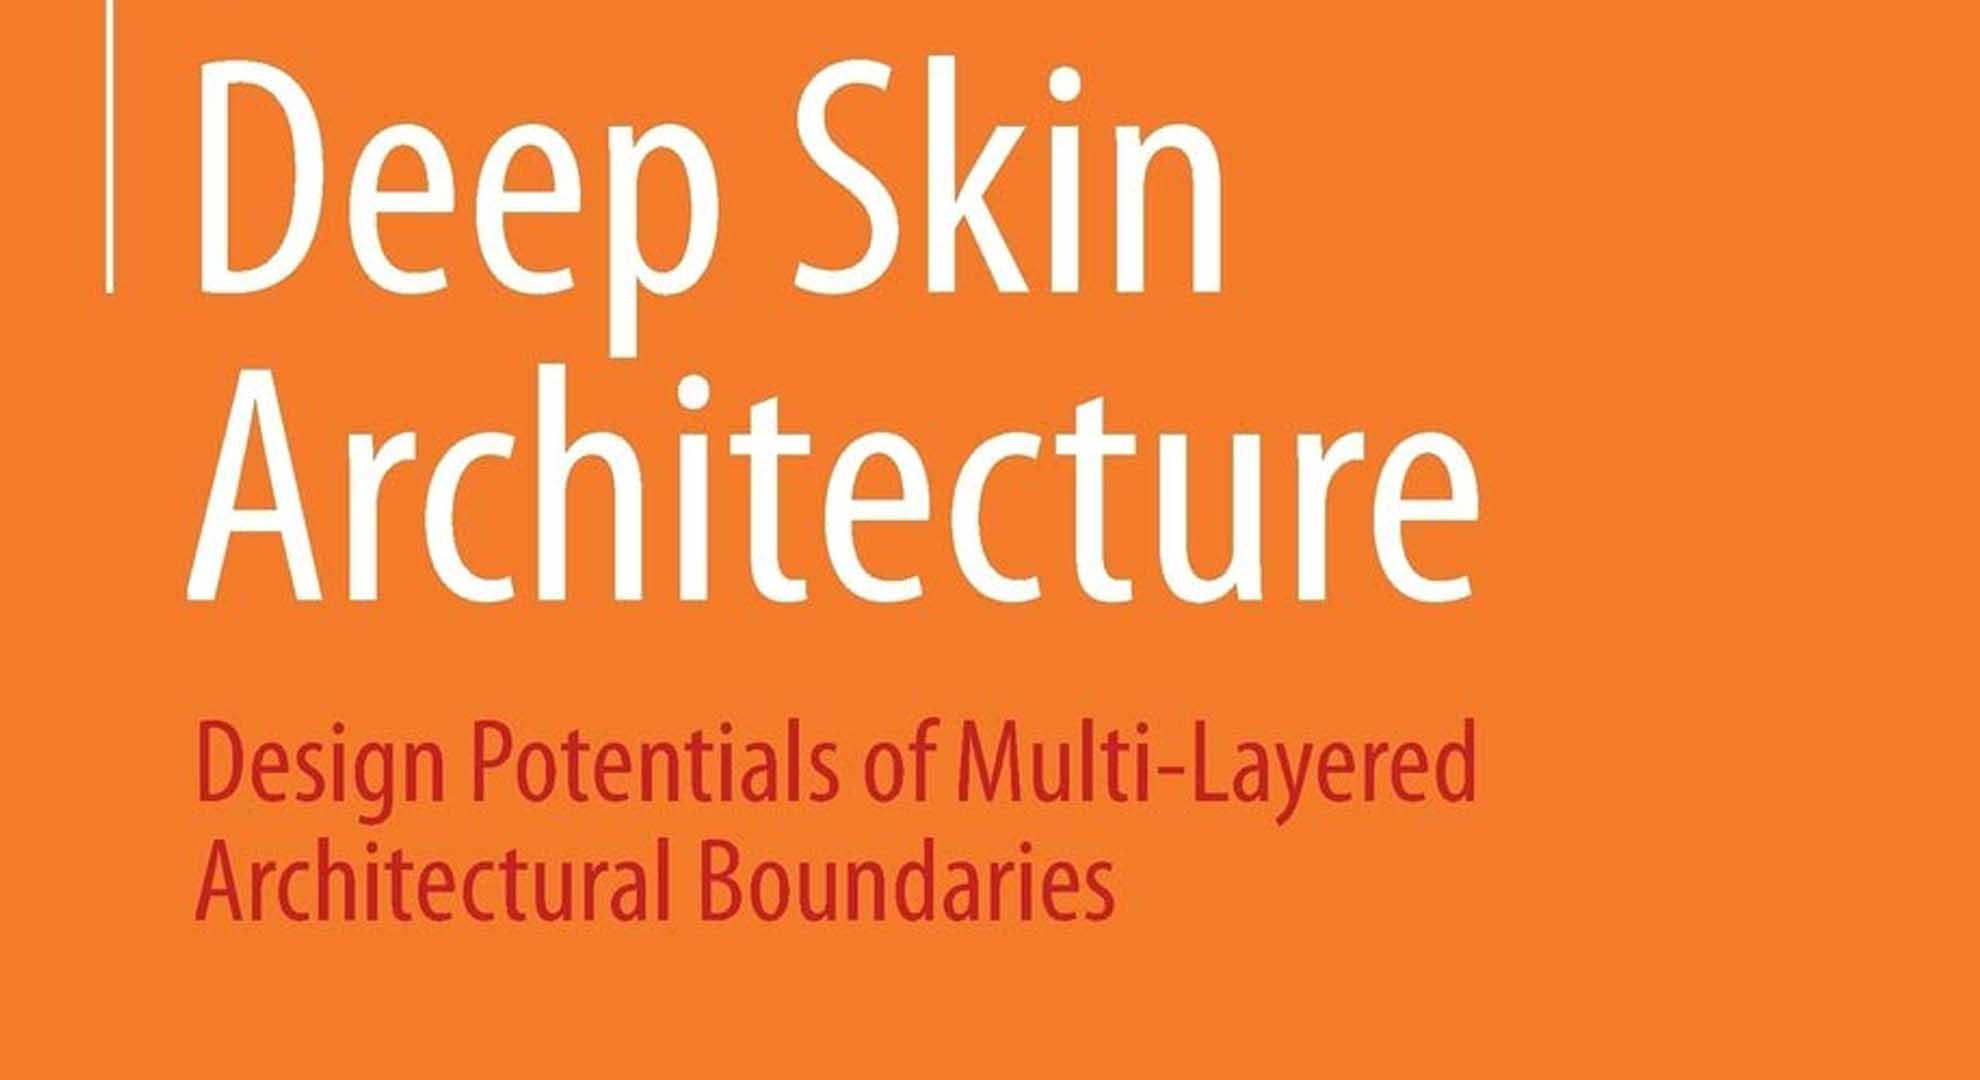 """Deep Skin Architecture"" compiles new types of facades"